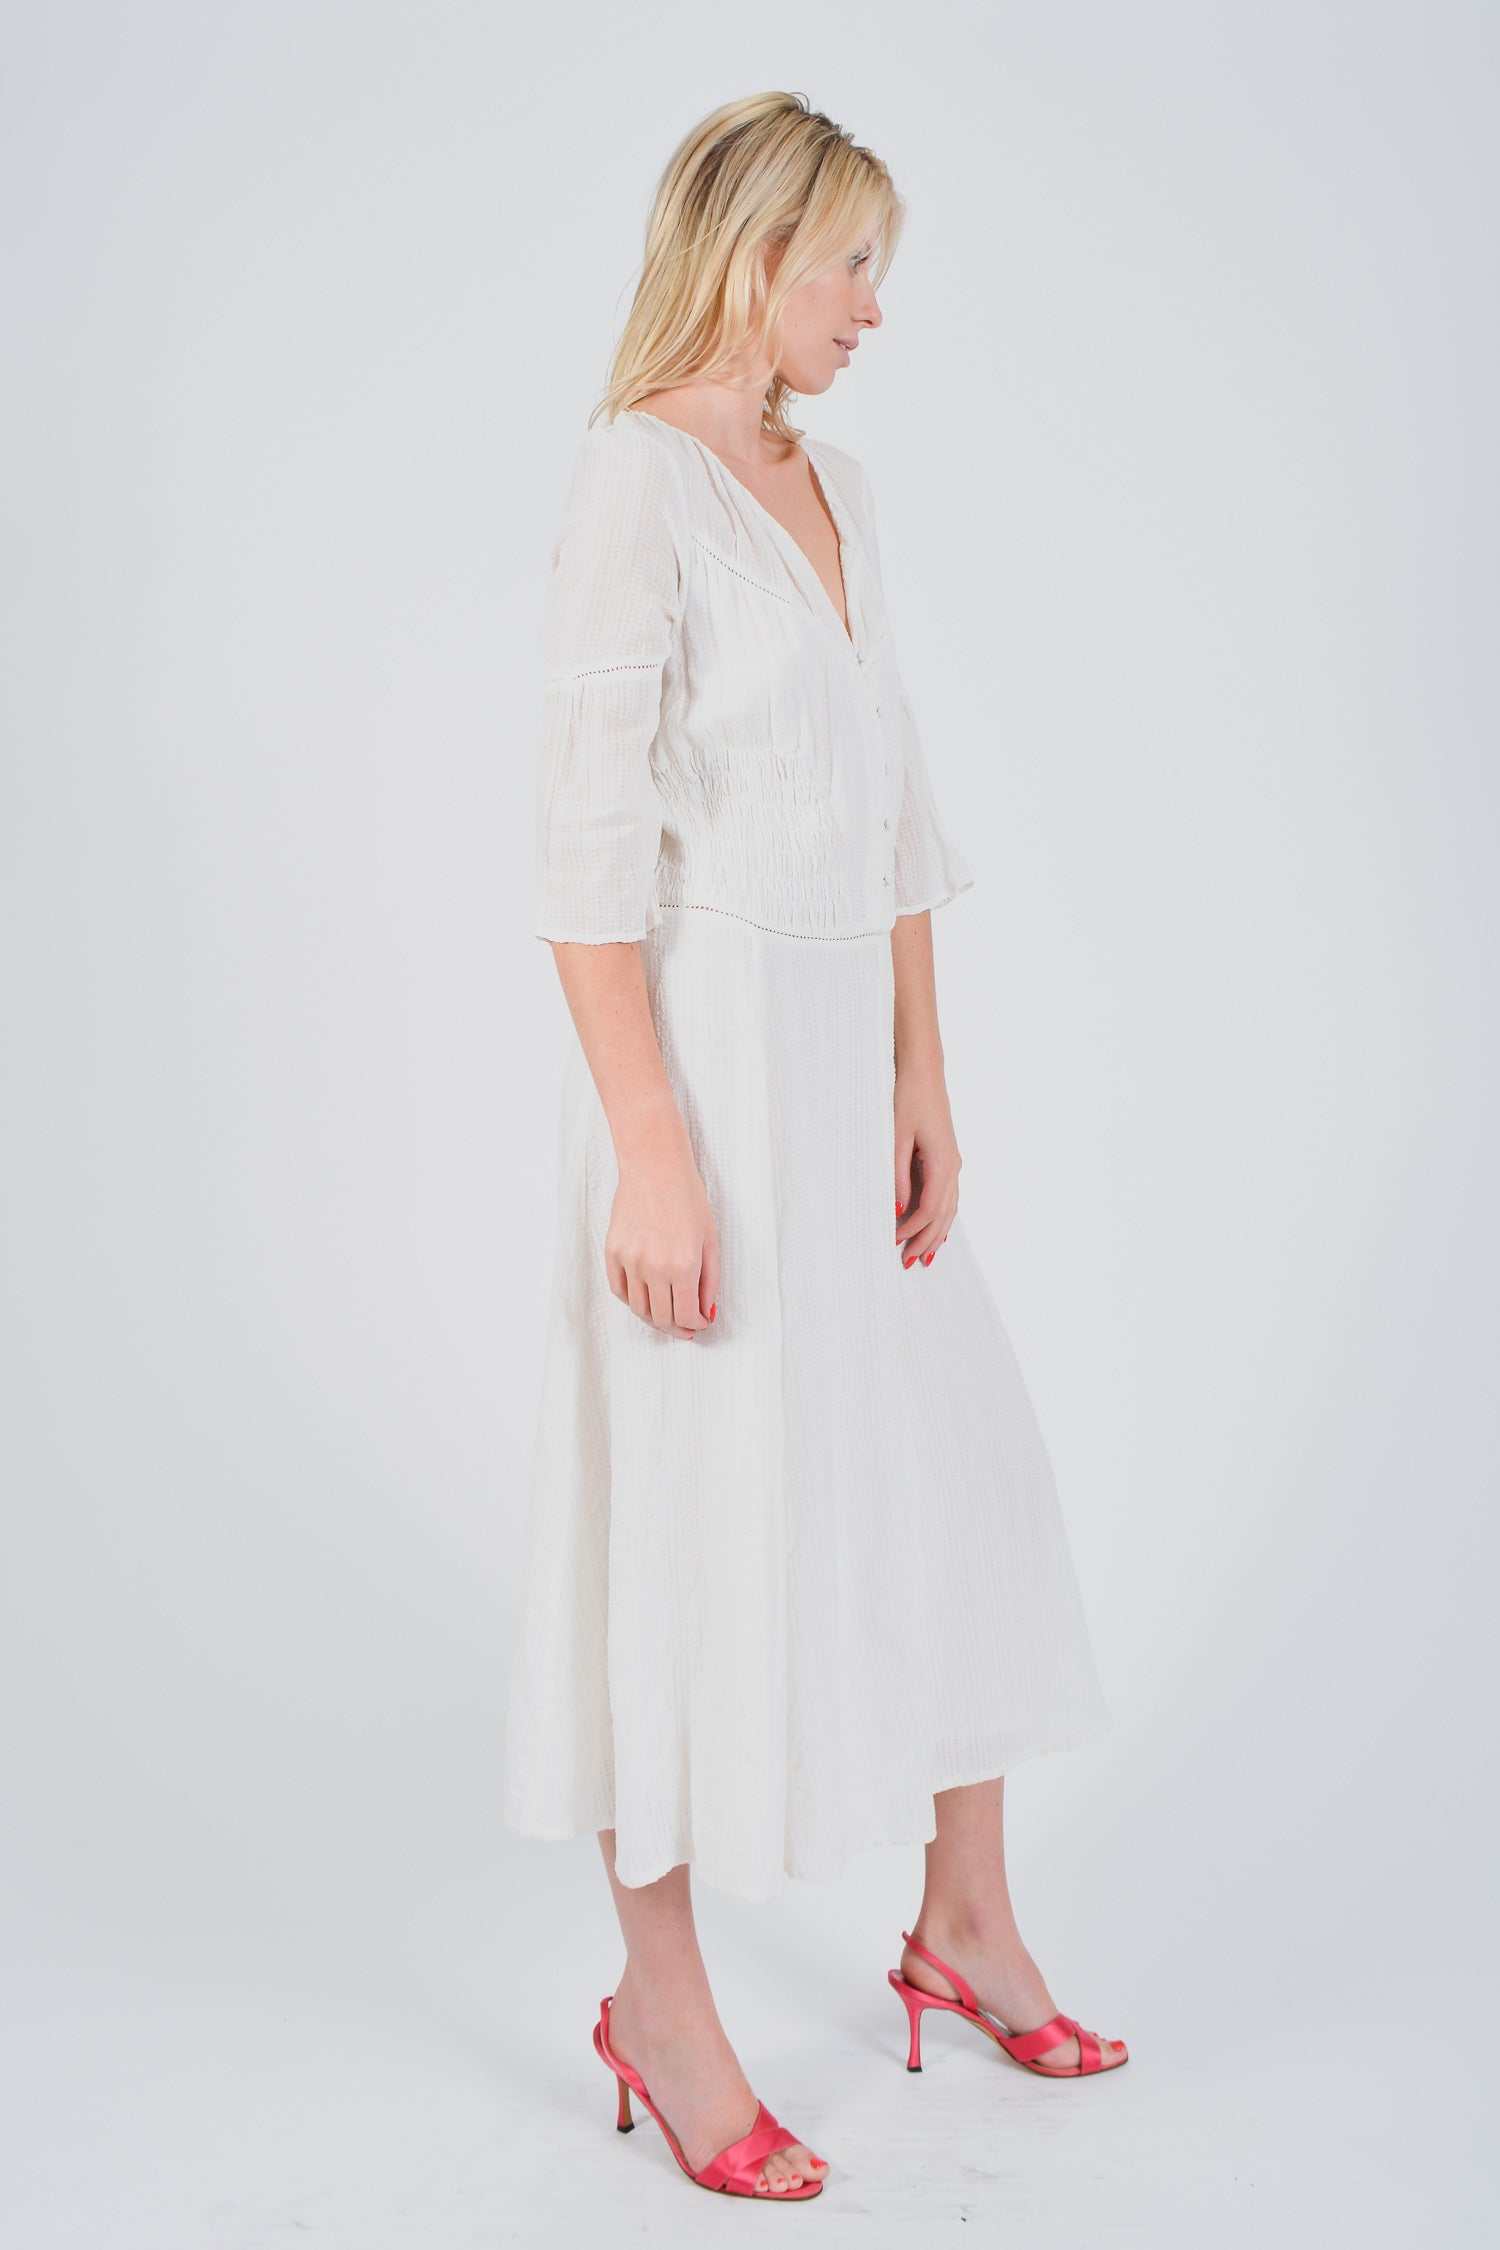 Maje White Long Dress Size 1